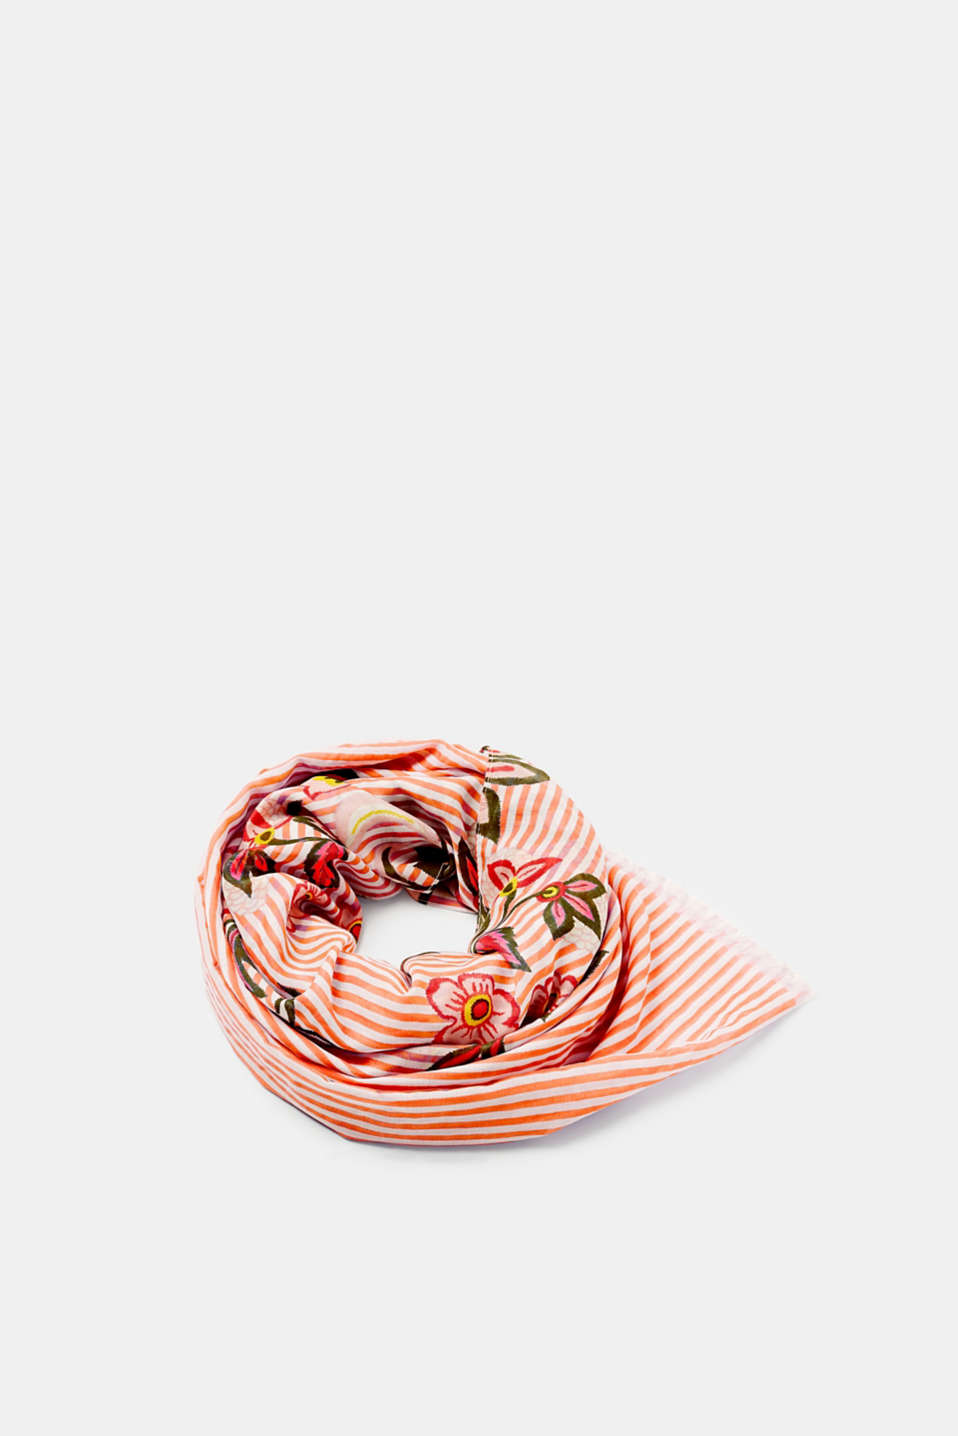 Position and drape it as the mood takes you: spring-ready scarf with a vibrant, floral/stripe print.